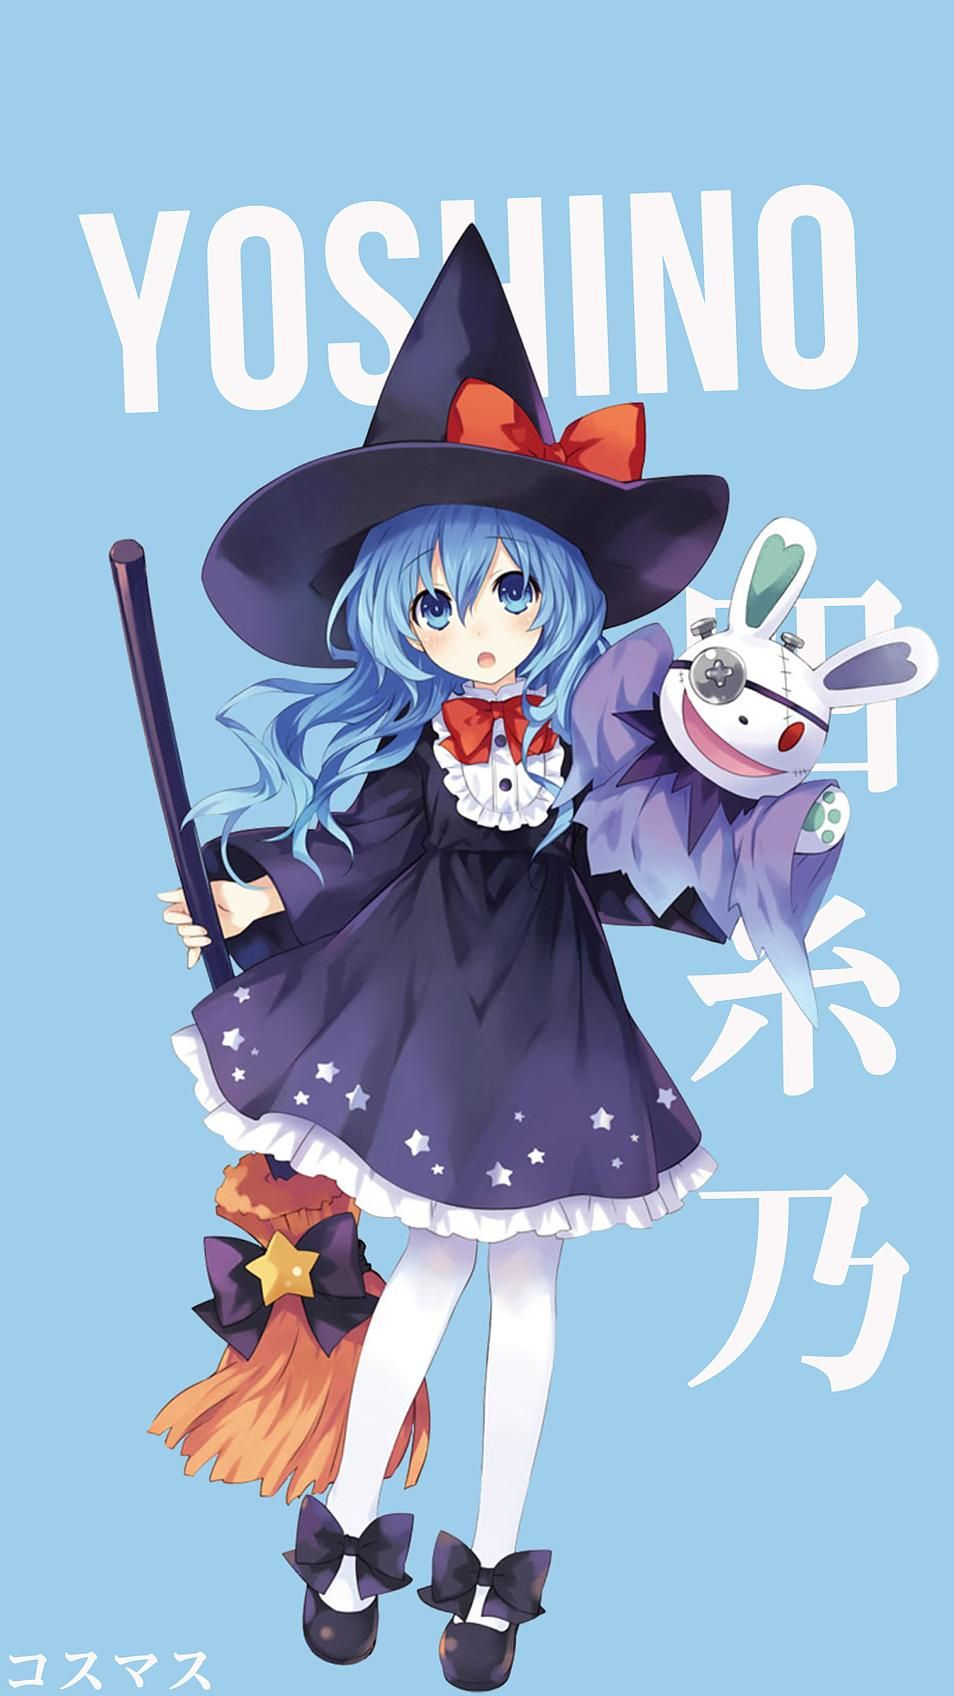 Yoshino in a witch costume. >,